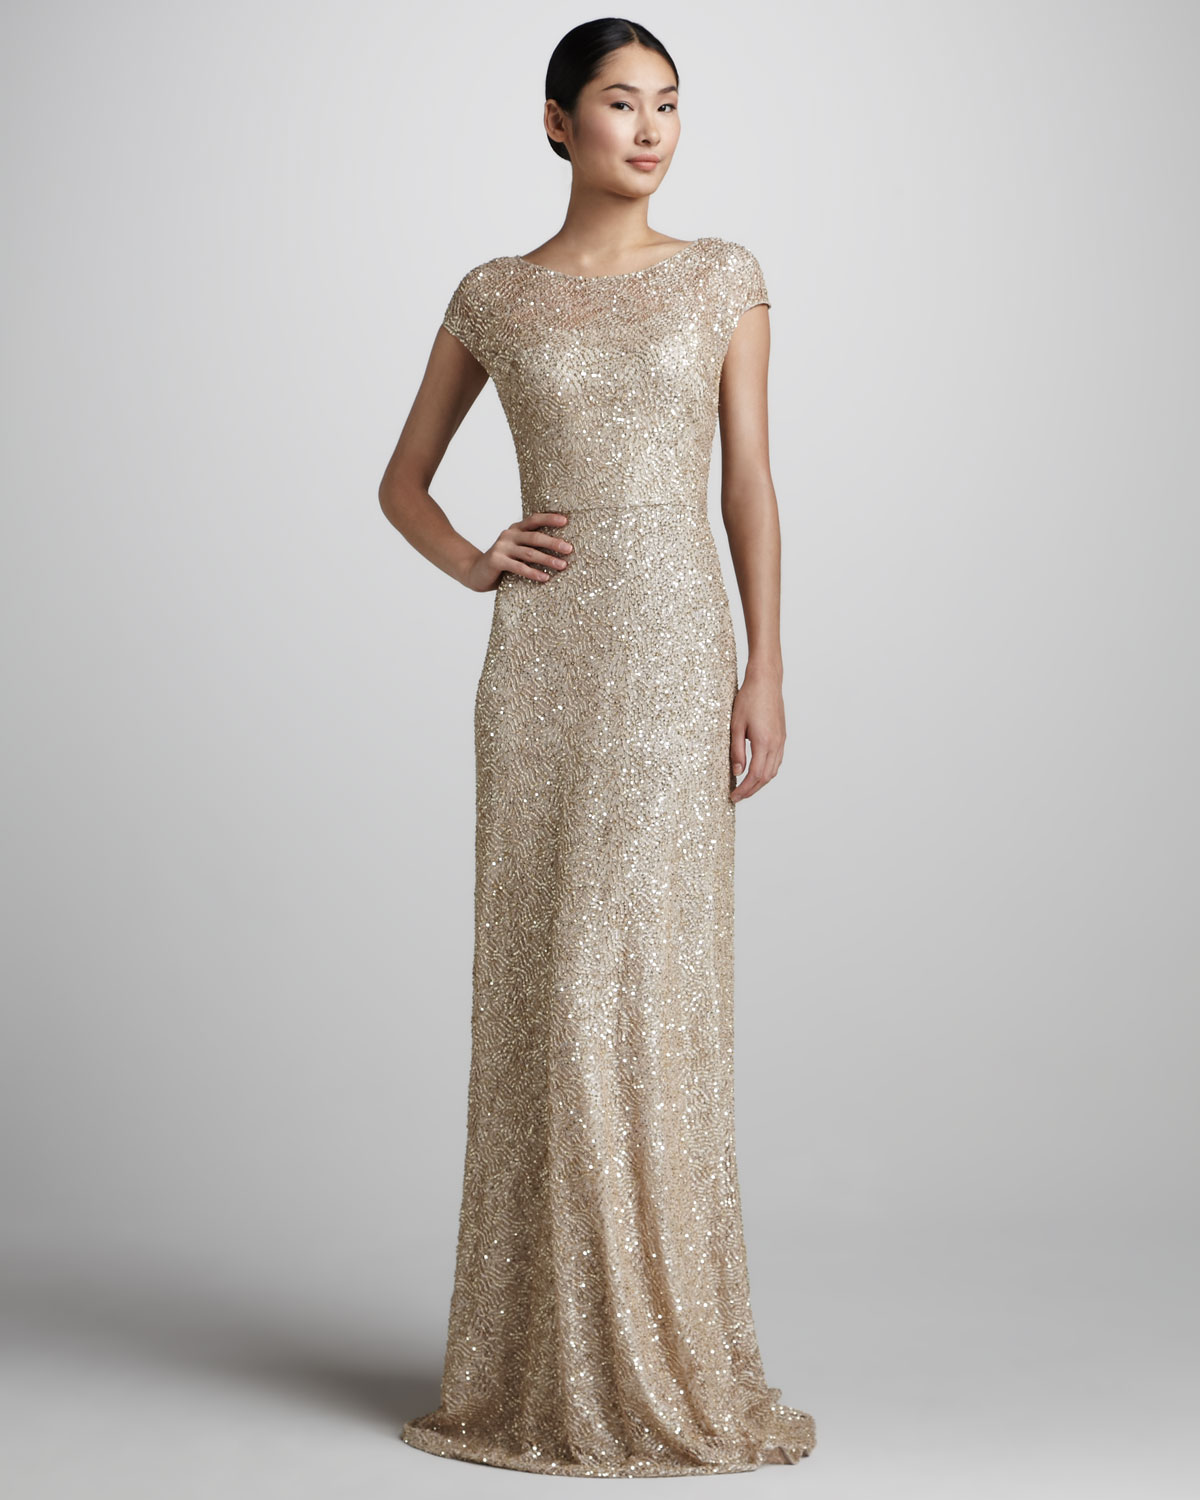 Lyst - David Meister Sequined Capsleeve Gown in Metallic